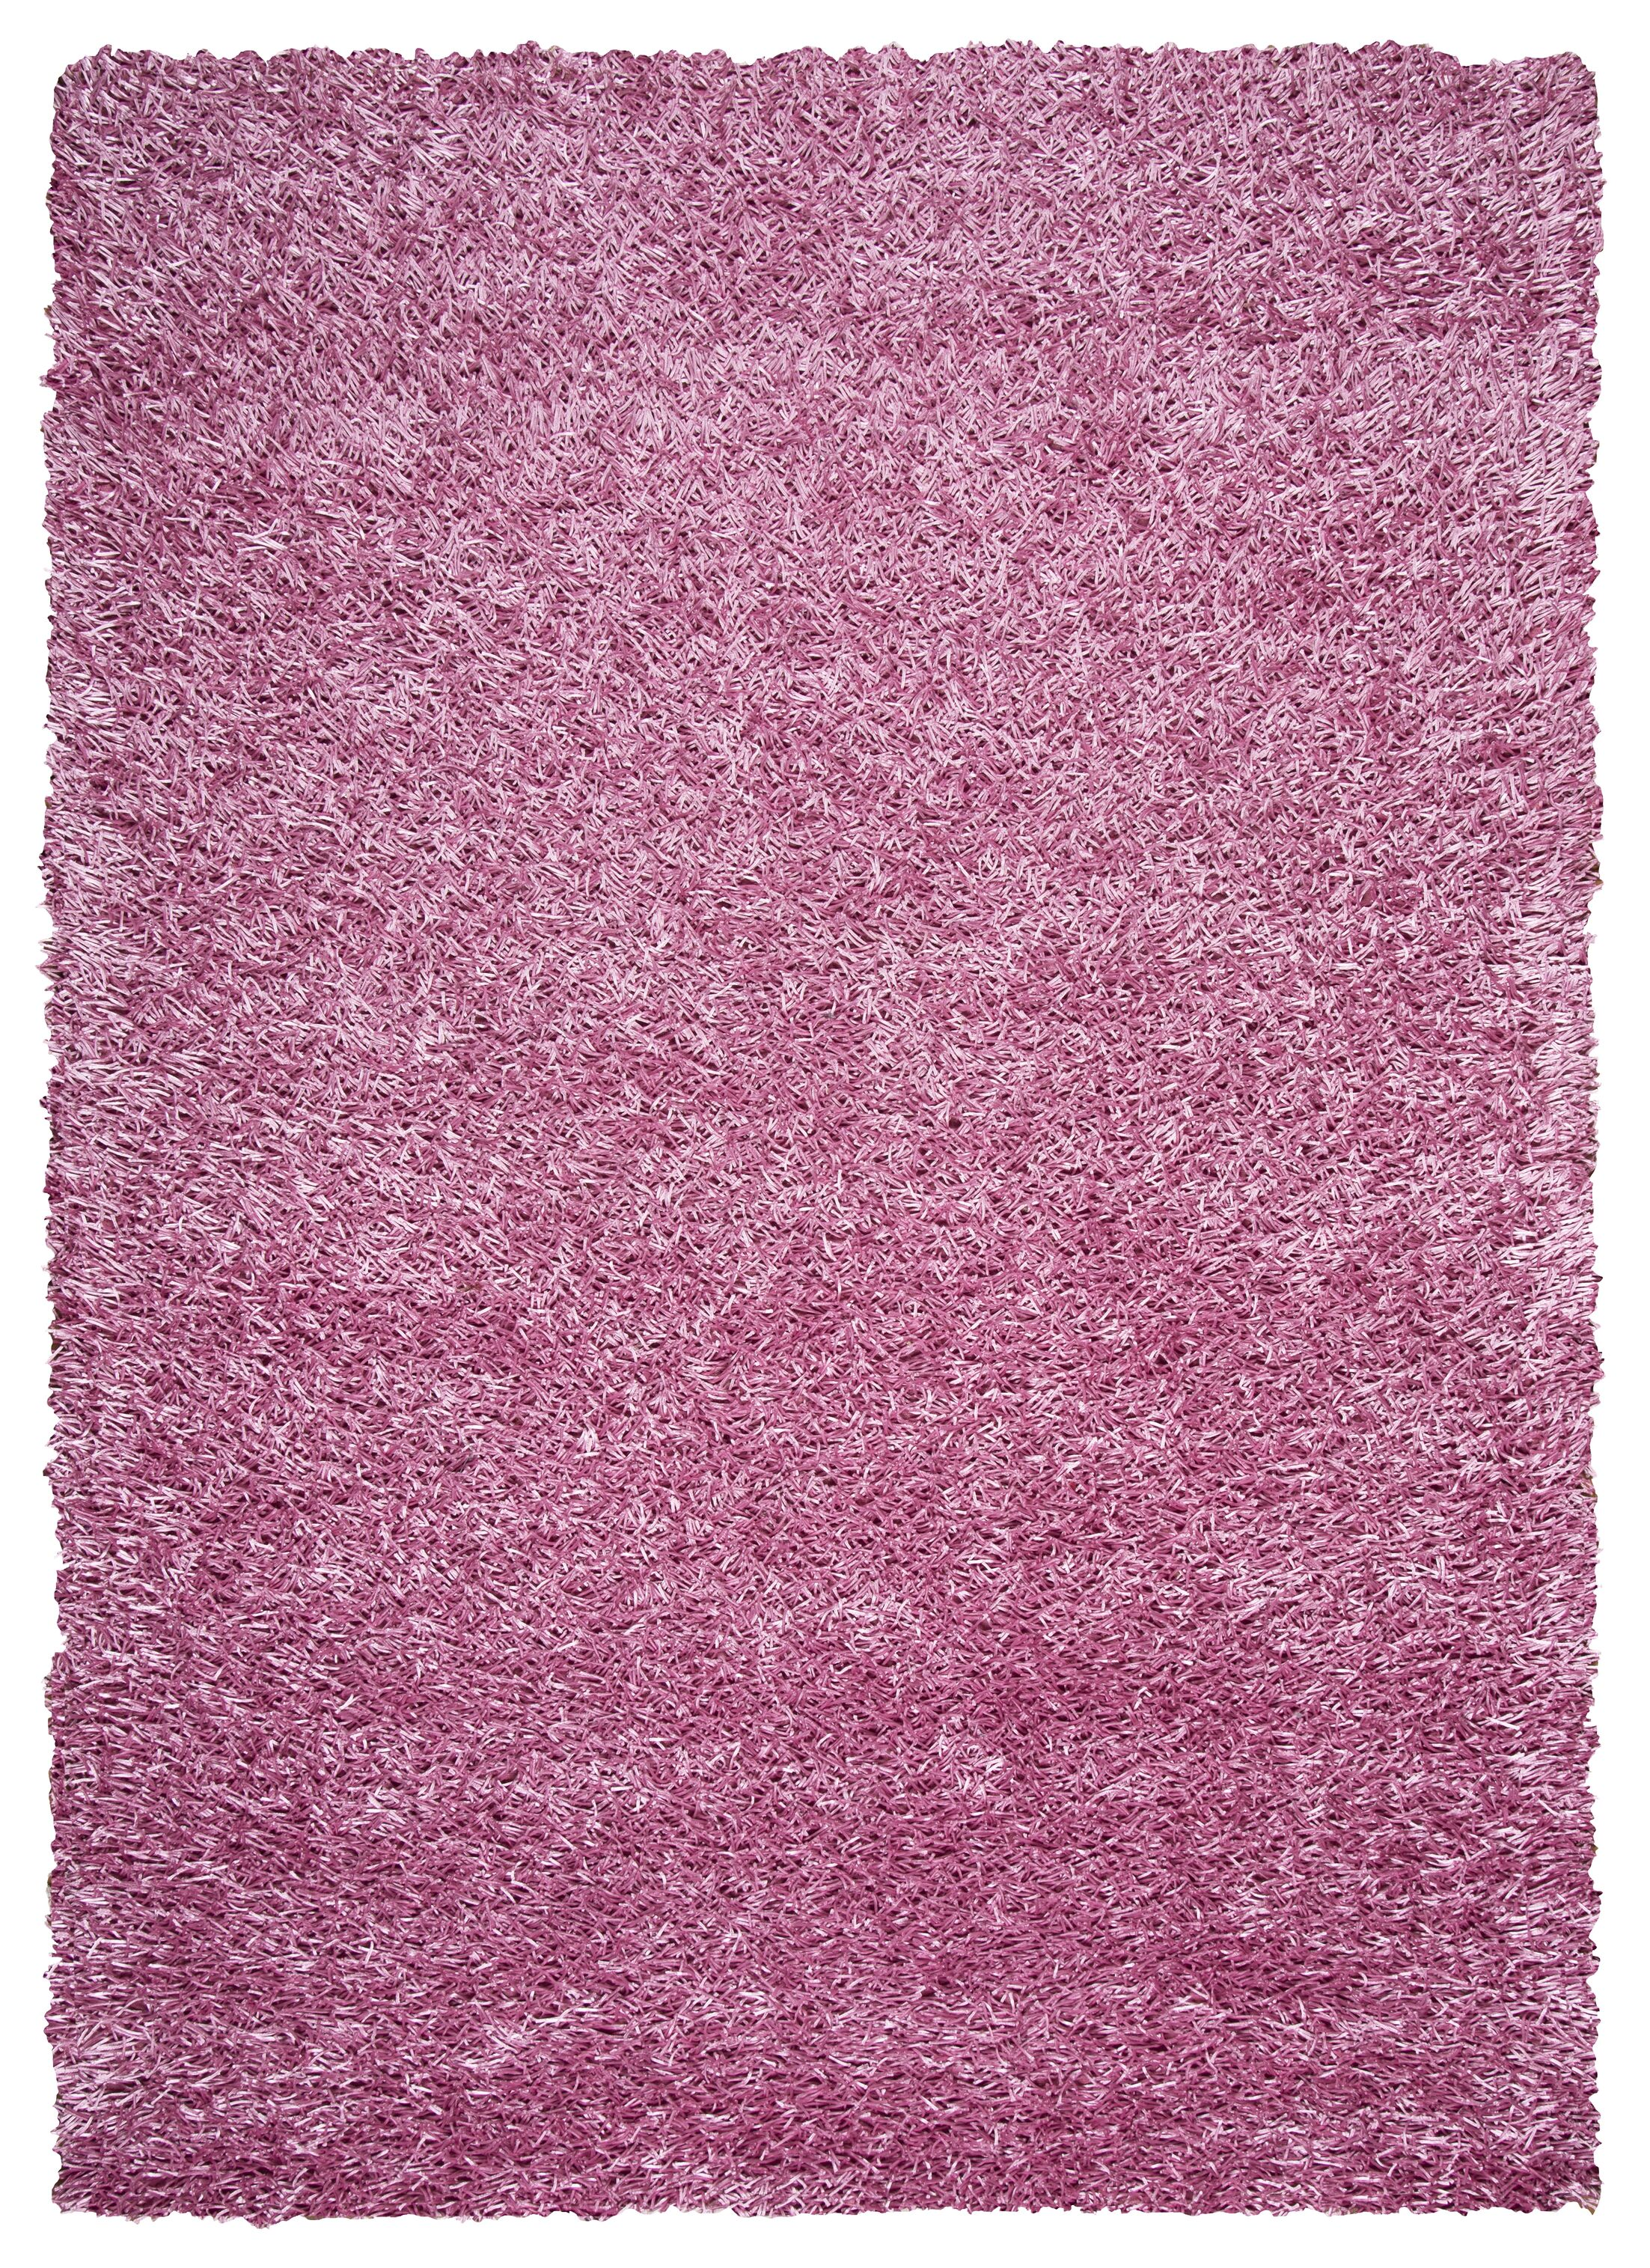 Hand-Tufted Pink Area Rug Rug Size: Rectangle 5' x 7'